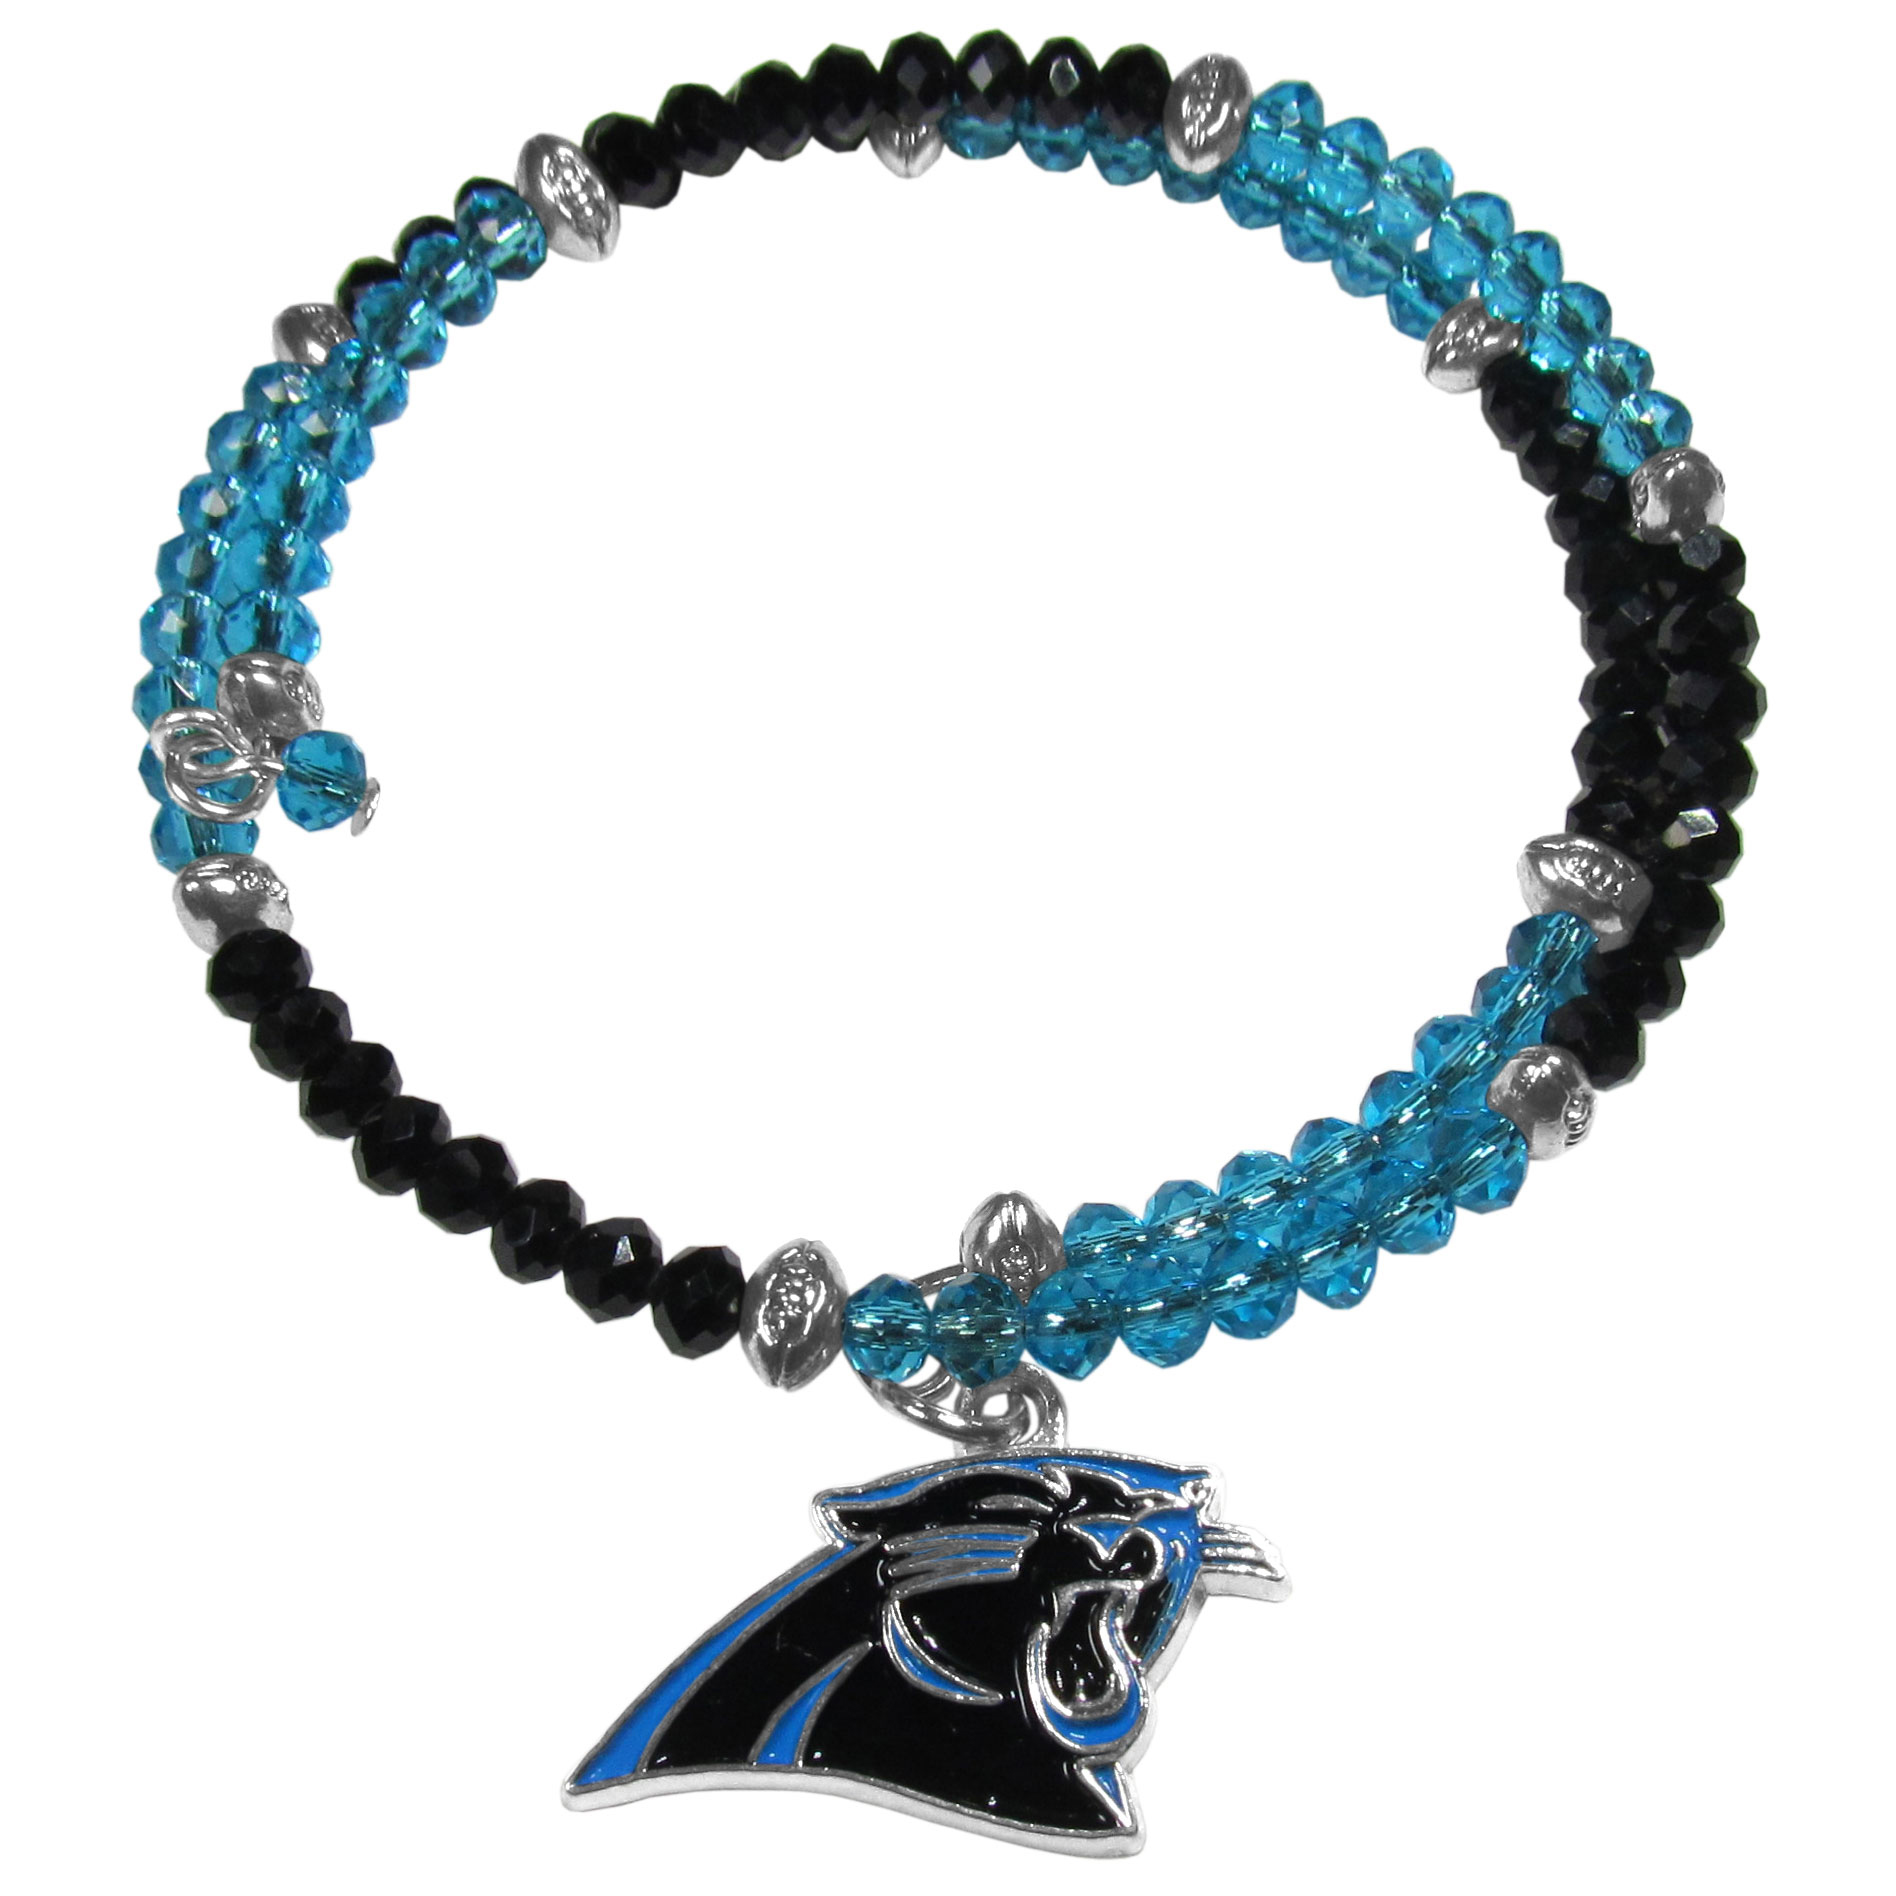 Carolina Panthers Crystal Memory Wire Bracelet - Our Carolina Panthers memory wire crystal bracelet is trendy way to show off your love of the game. The double wrap bracelet is completely covered in 4 mm crystals that are broken up with adorable football beads creating a designer look with a sporty twist. The bracelet features a fully cast, metal team charm that has expertly enameled team colors. This fashion jewelry piece is a must-have for the die-hard fan that chic look that can dress up any outfit.